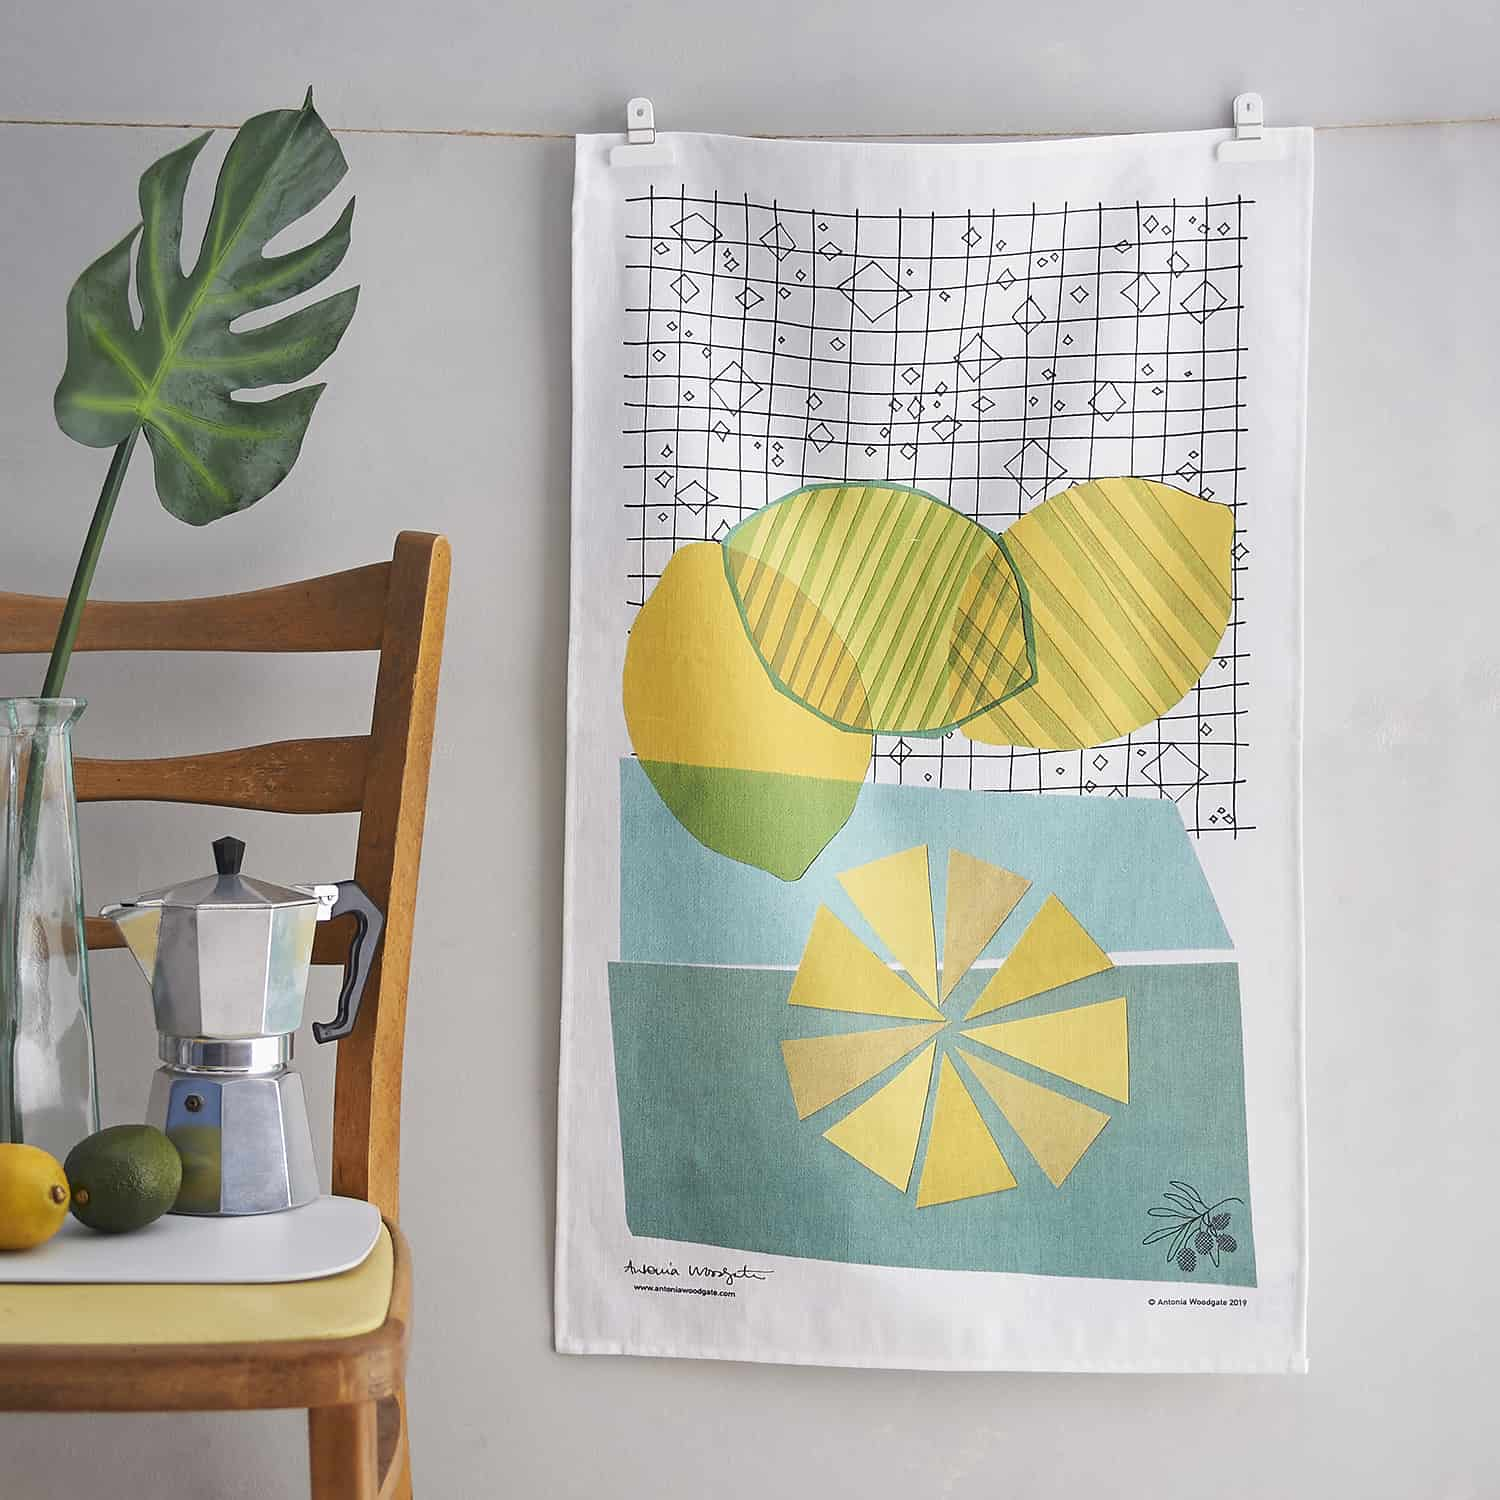 A photograph of a tea towel by designer Antonia Woodgate, styled with colour co-ordinating palm and fruits